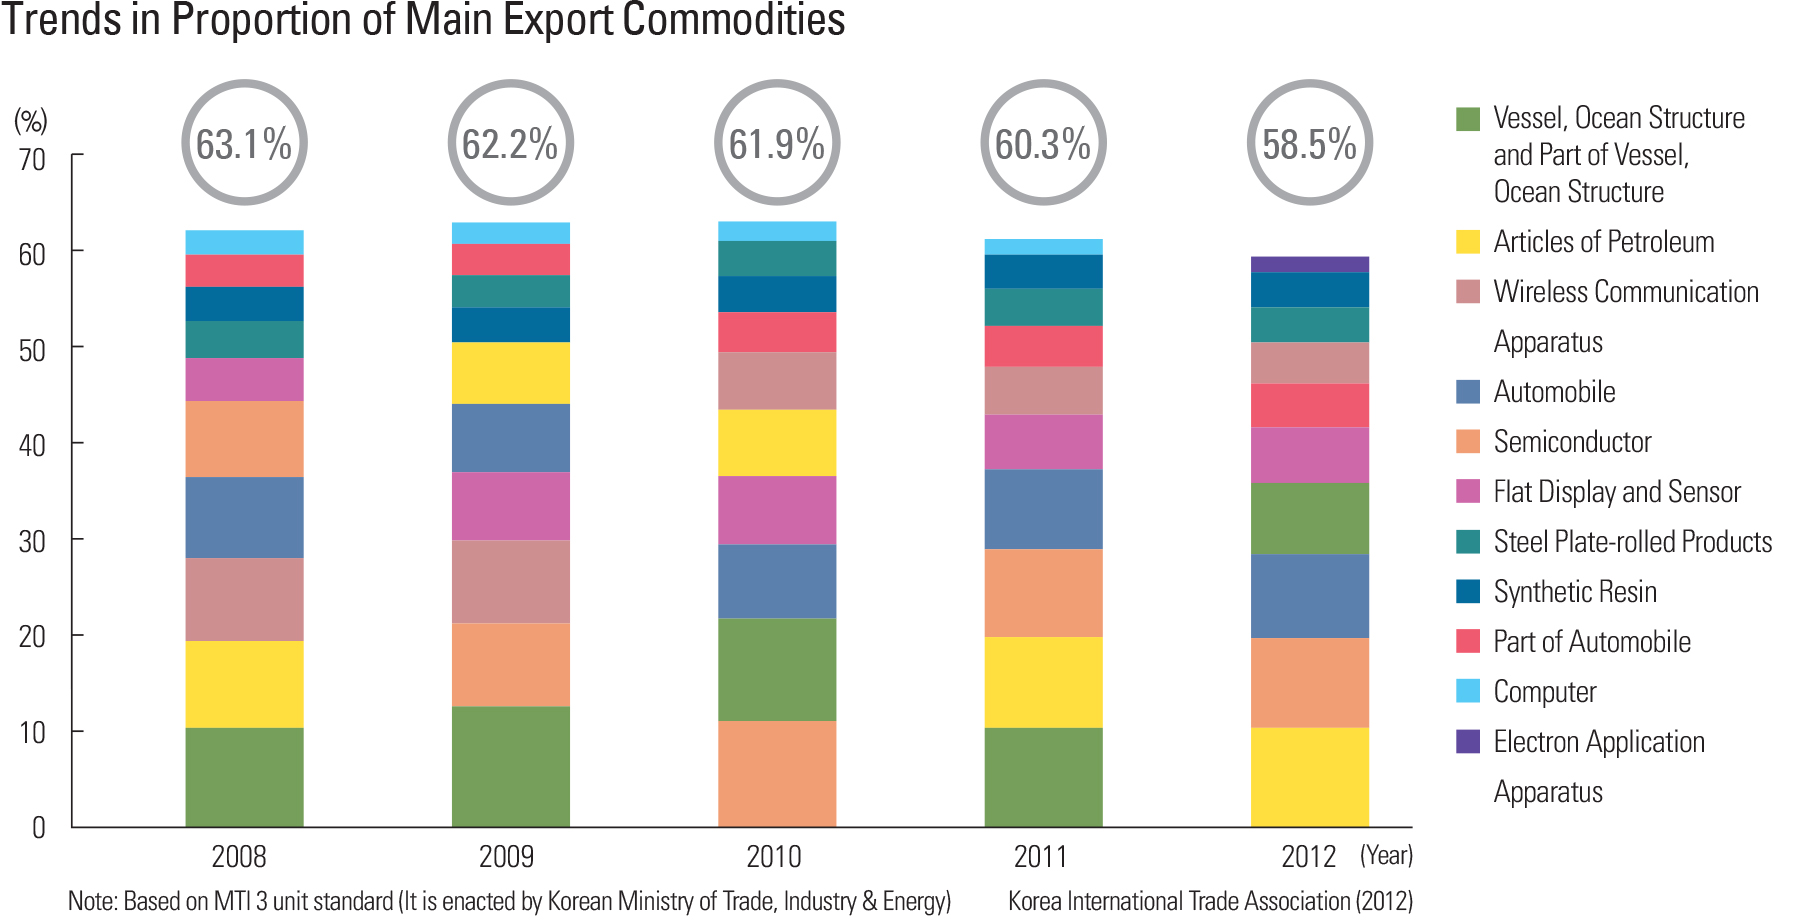 Trends in Proportion of Main Export Commodities